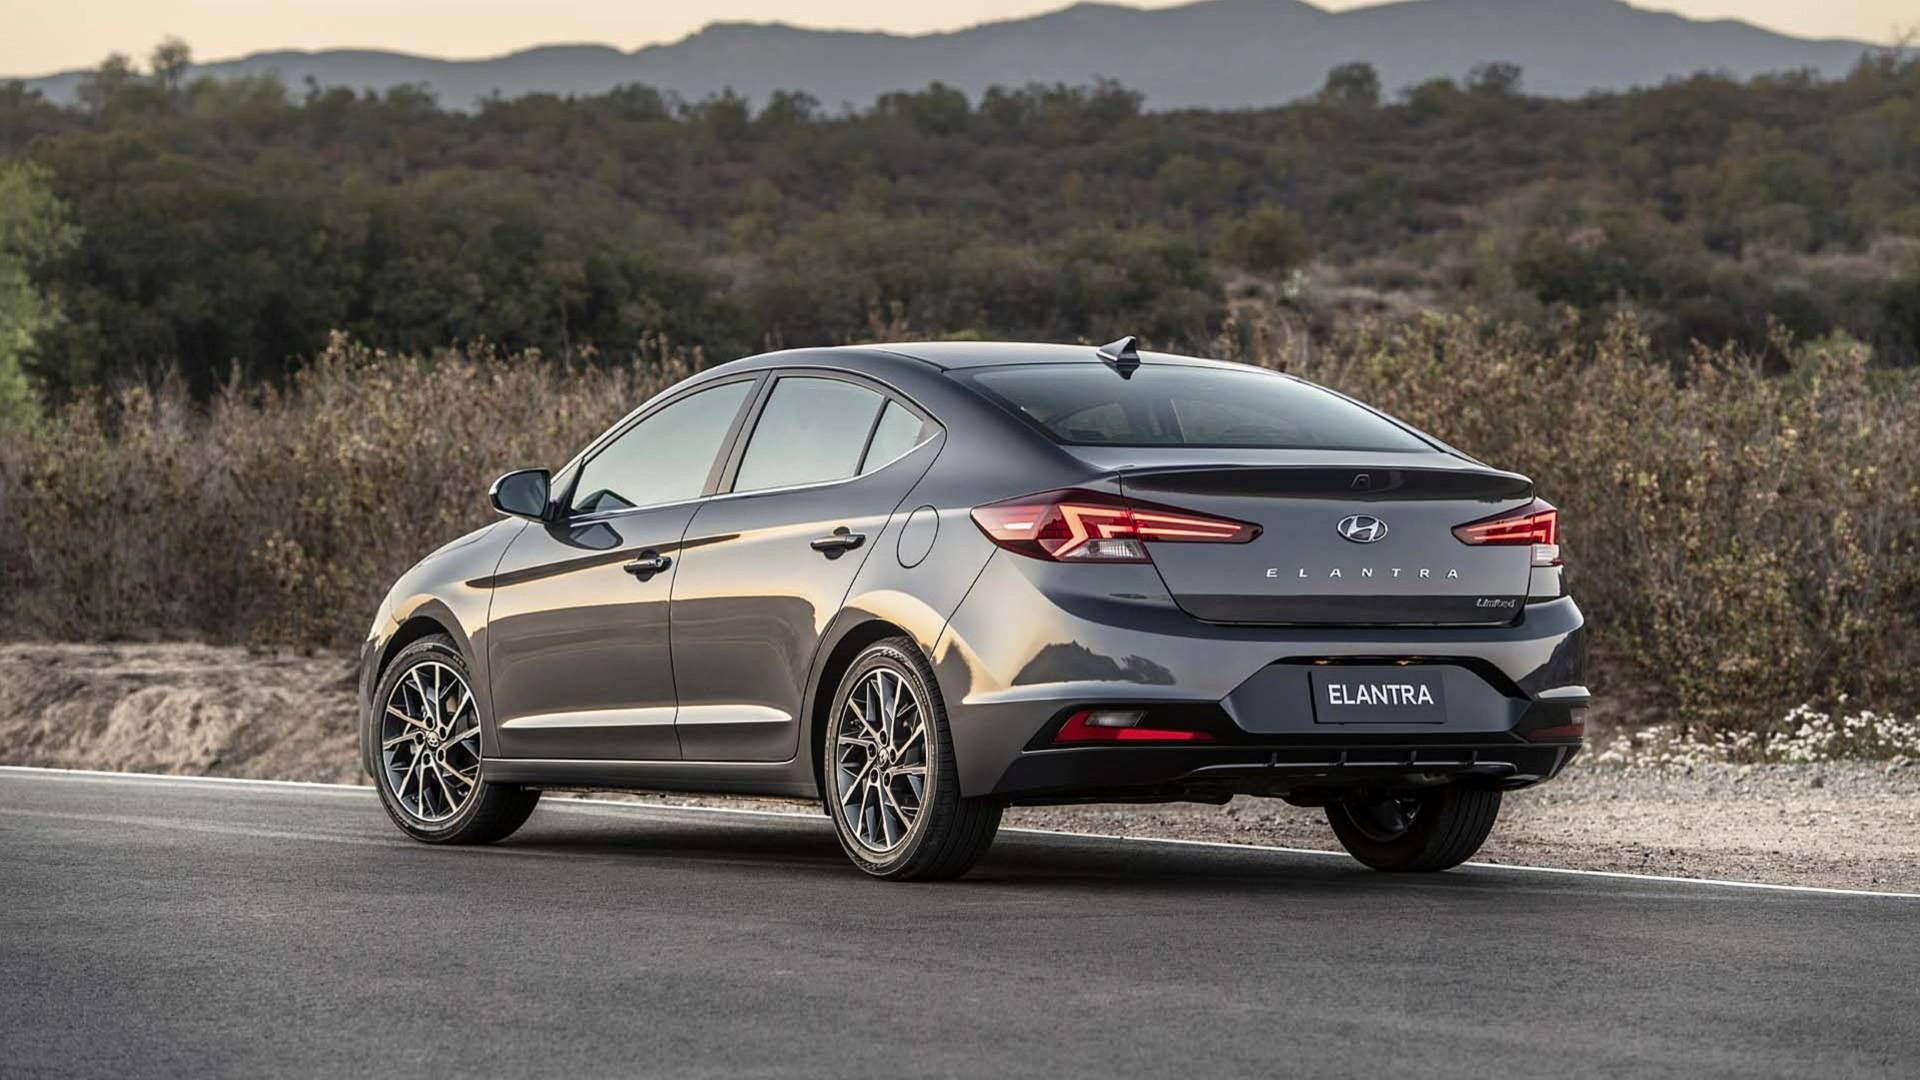 58 New 2019 Hyundai Elantra Sedan Picture